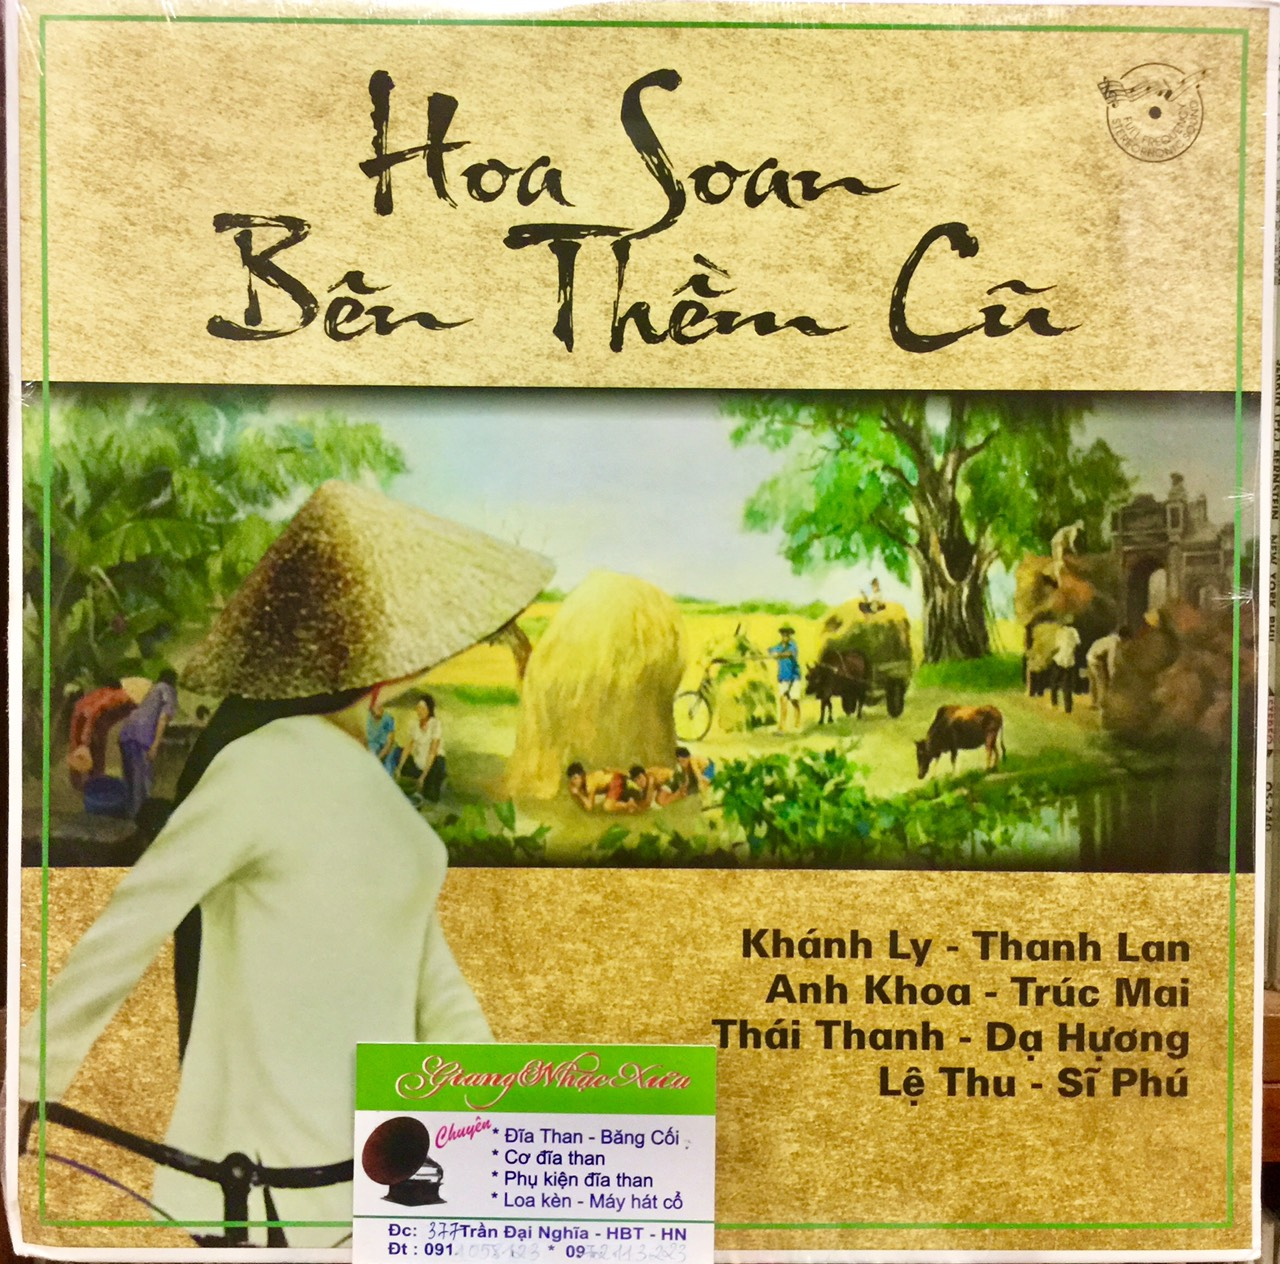 dia-than-hoa-soan-ben-them-cu